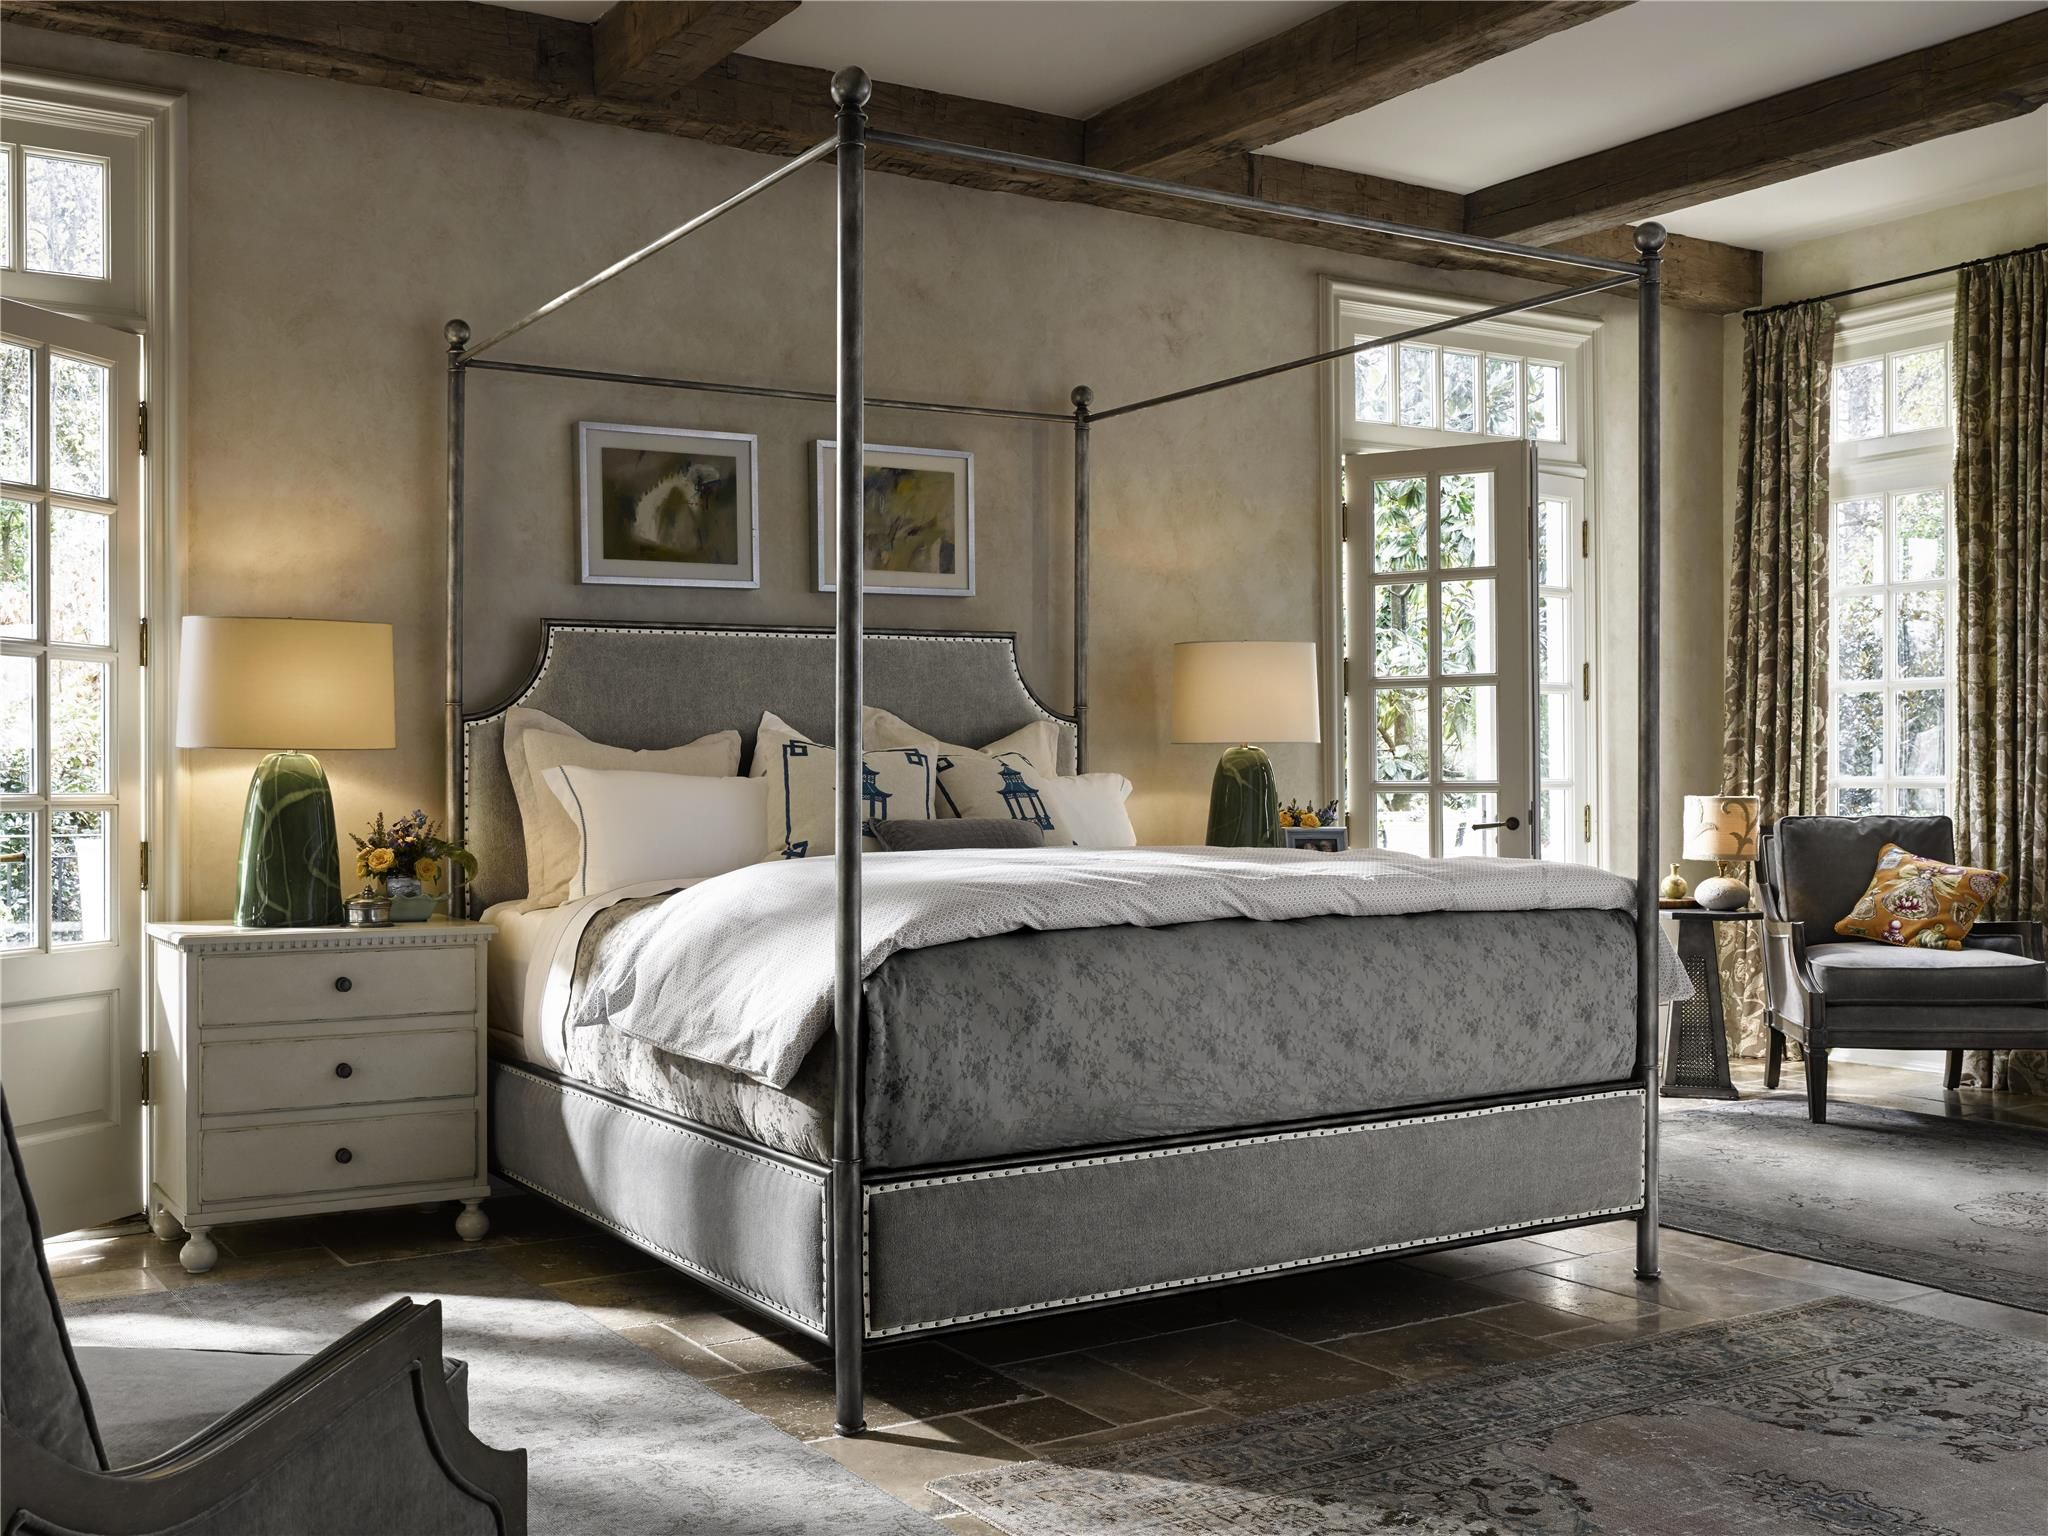 Sojourn Respite Bed (King) Universal Furniture metal